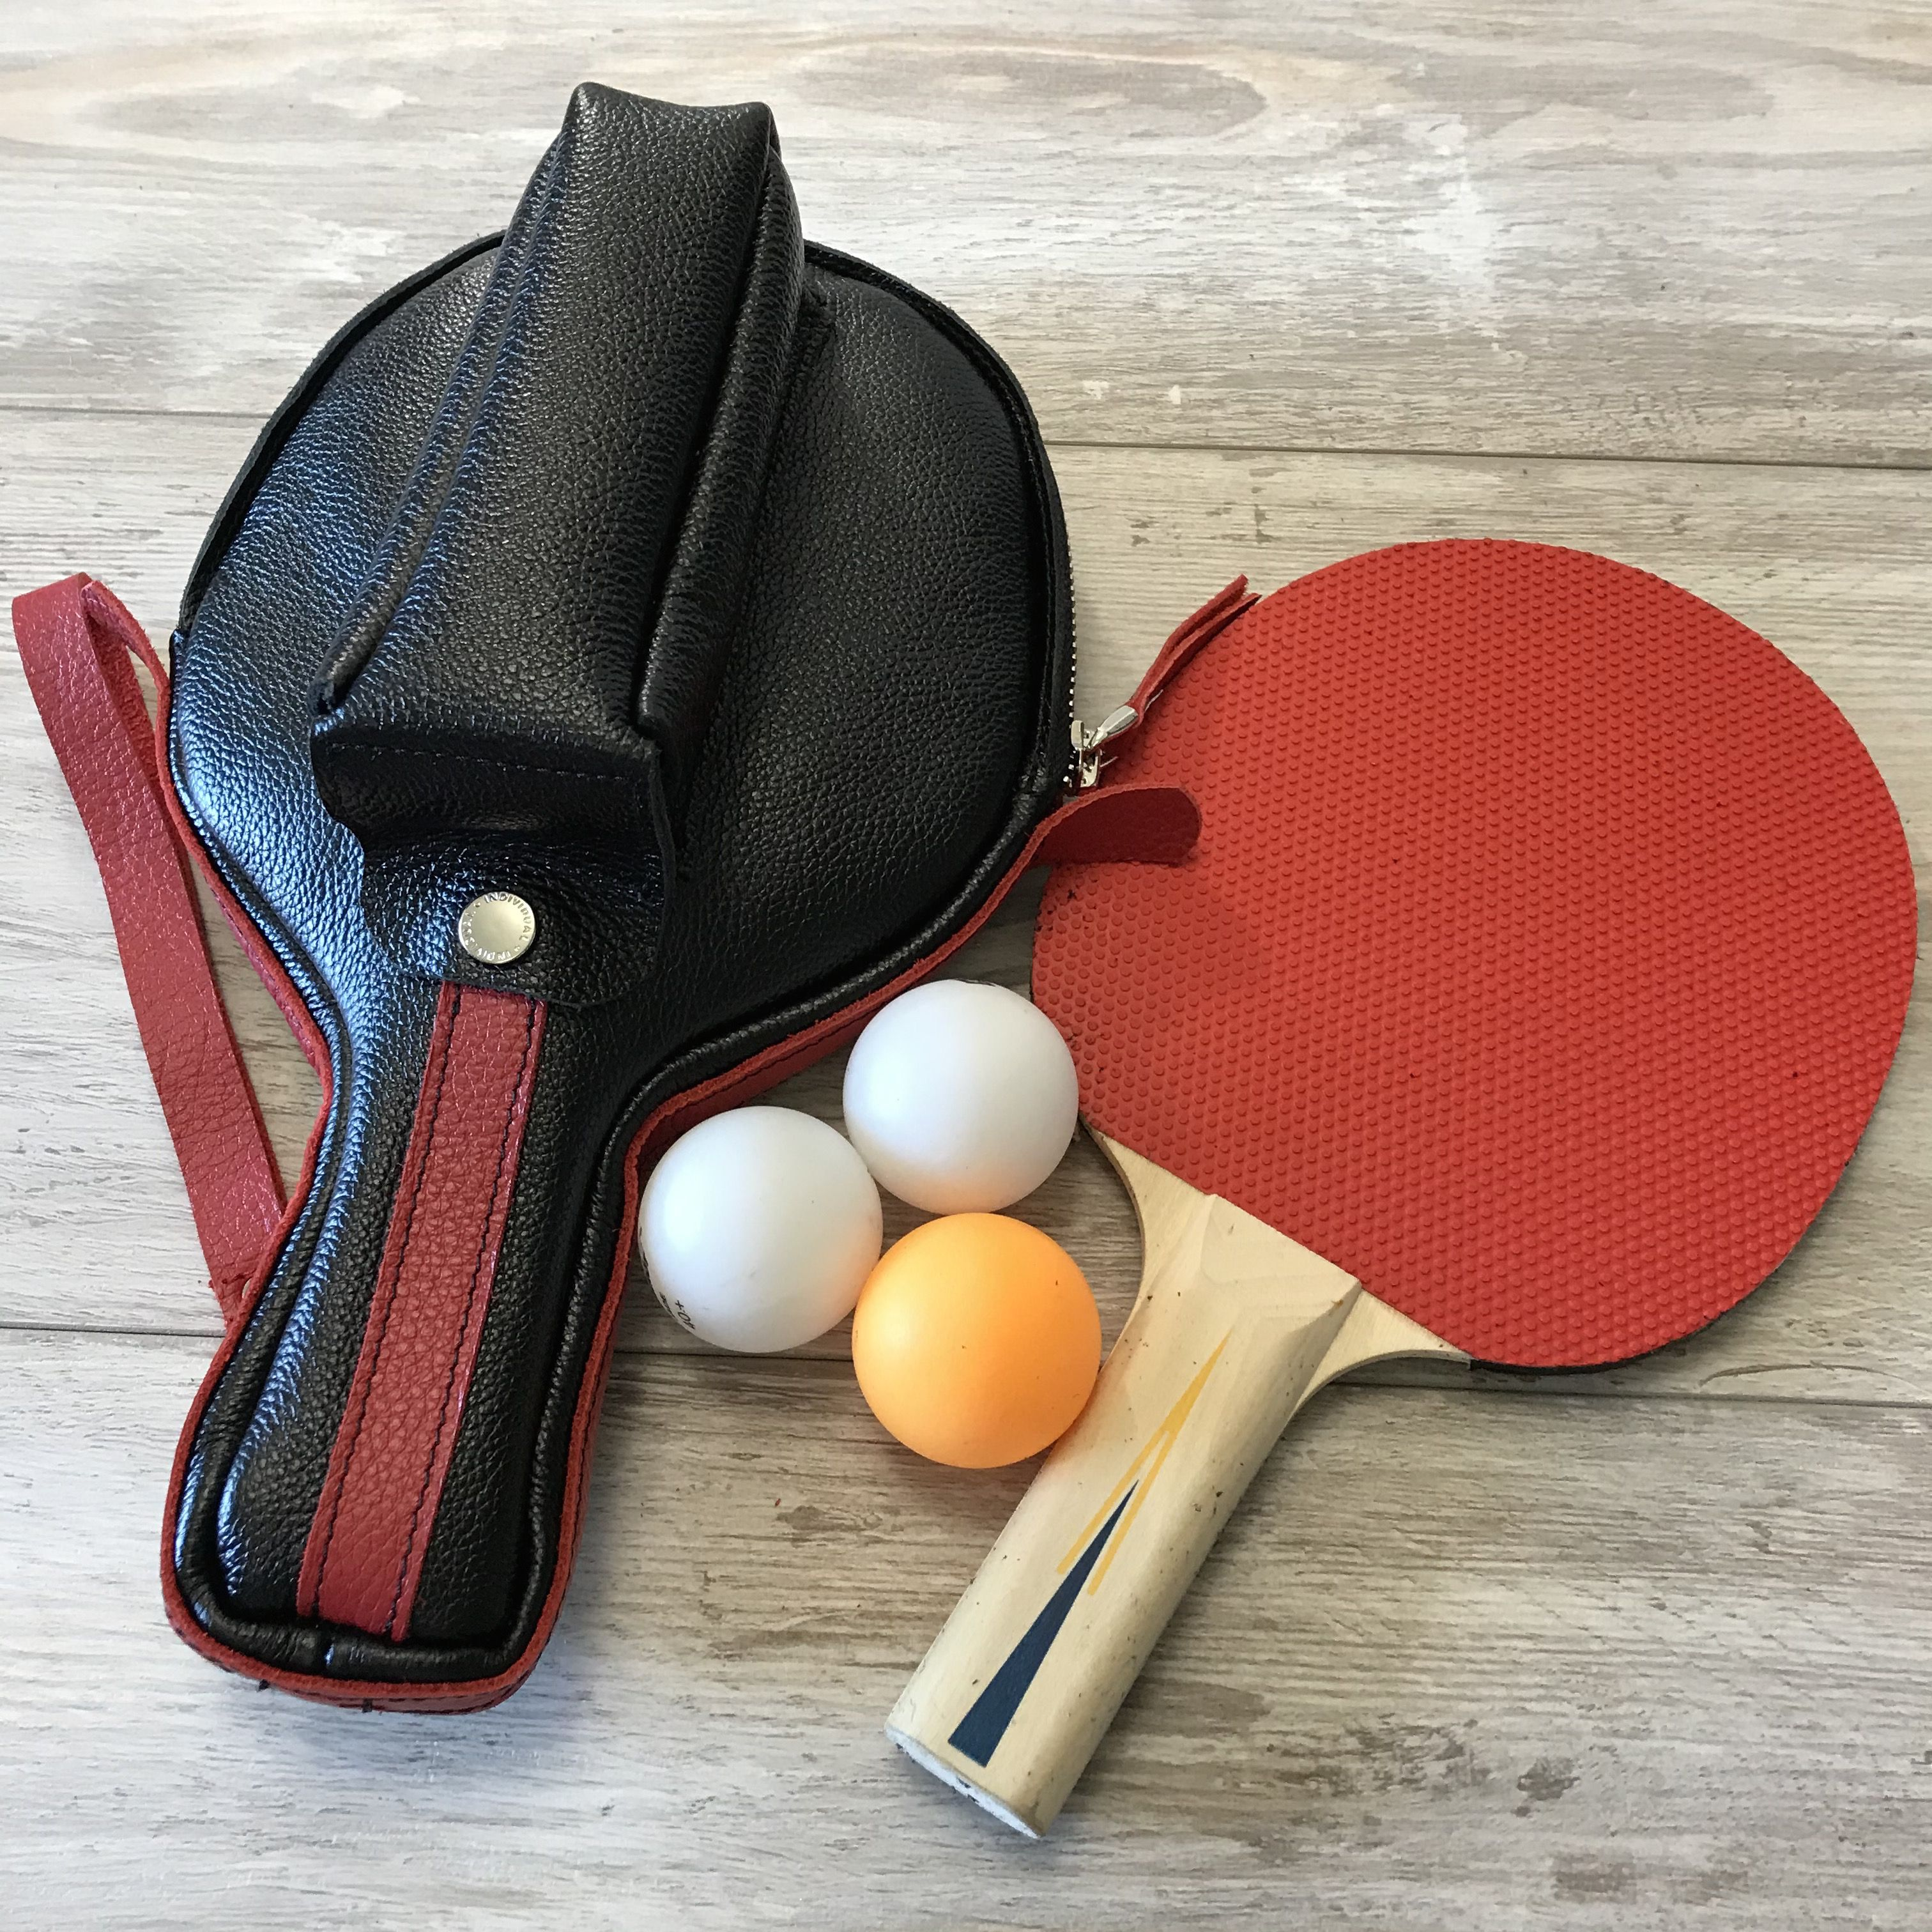 Pair Professional 3-Star Table Tennis Ping Pong Paddle Racket with Case /& 3Balls